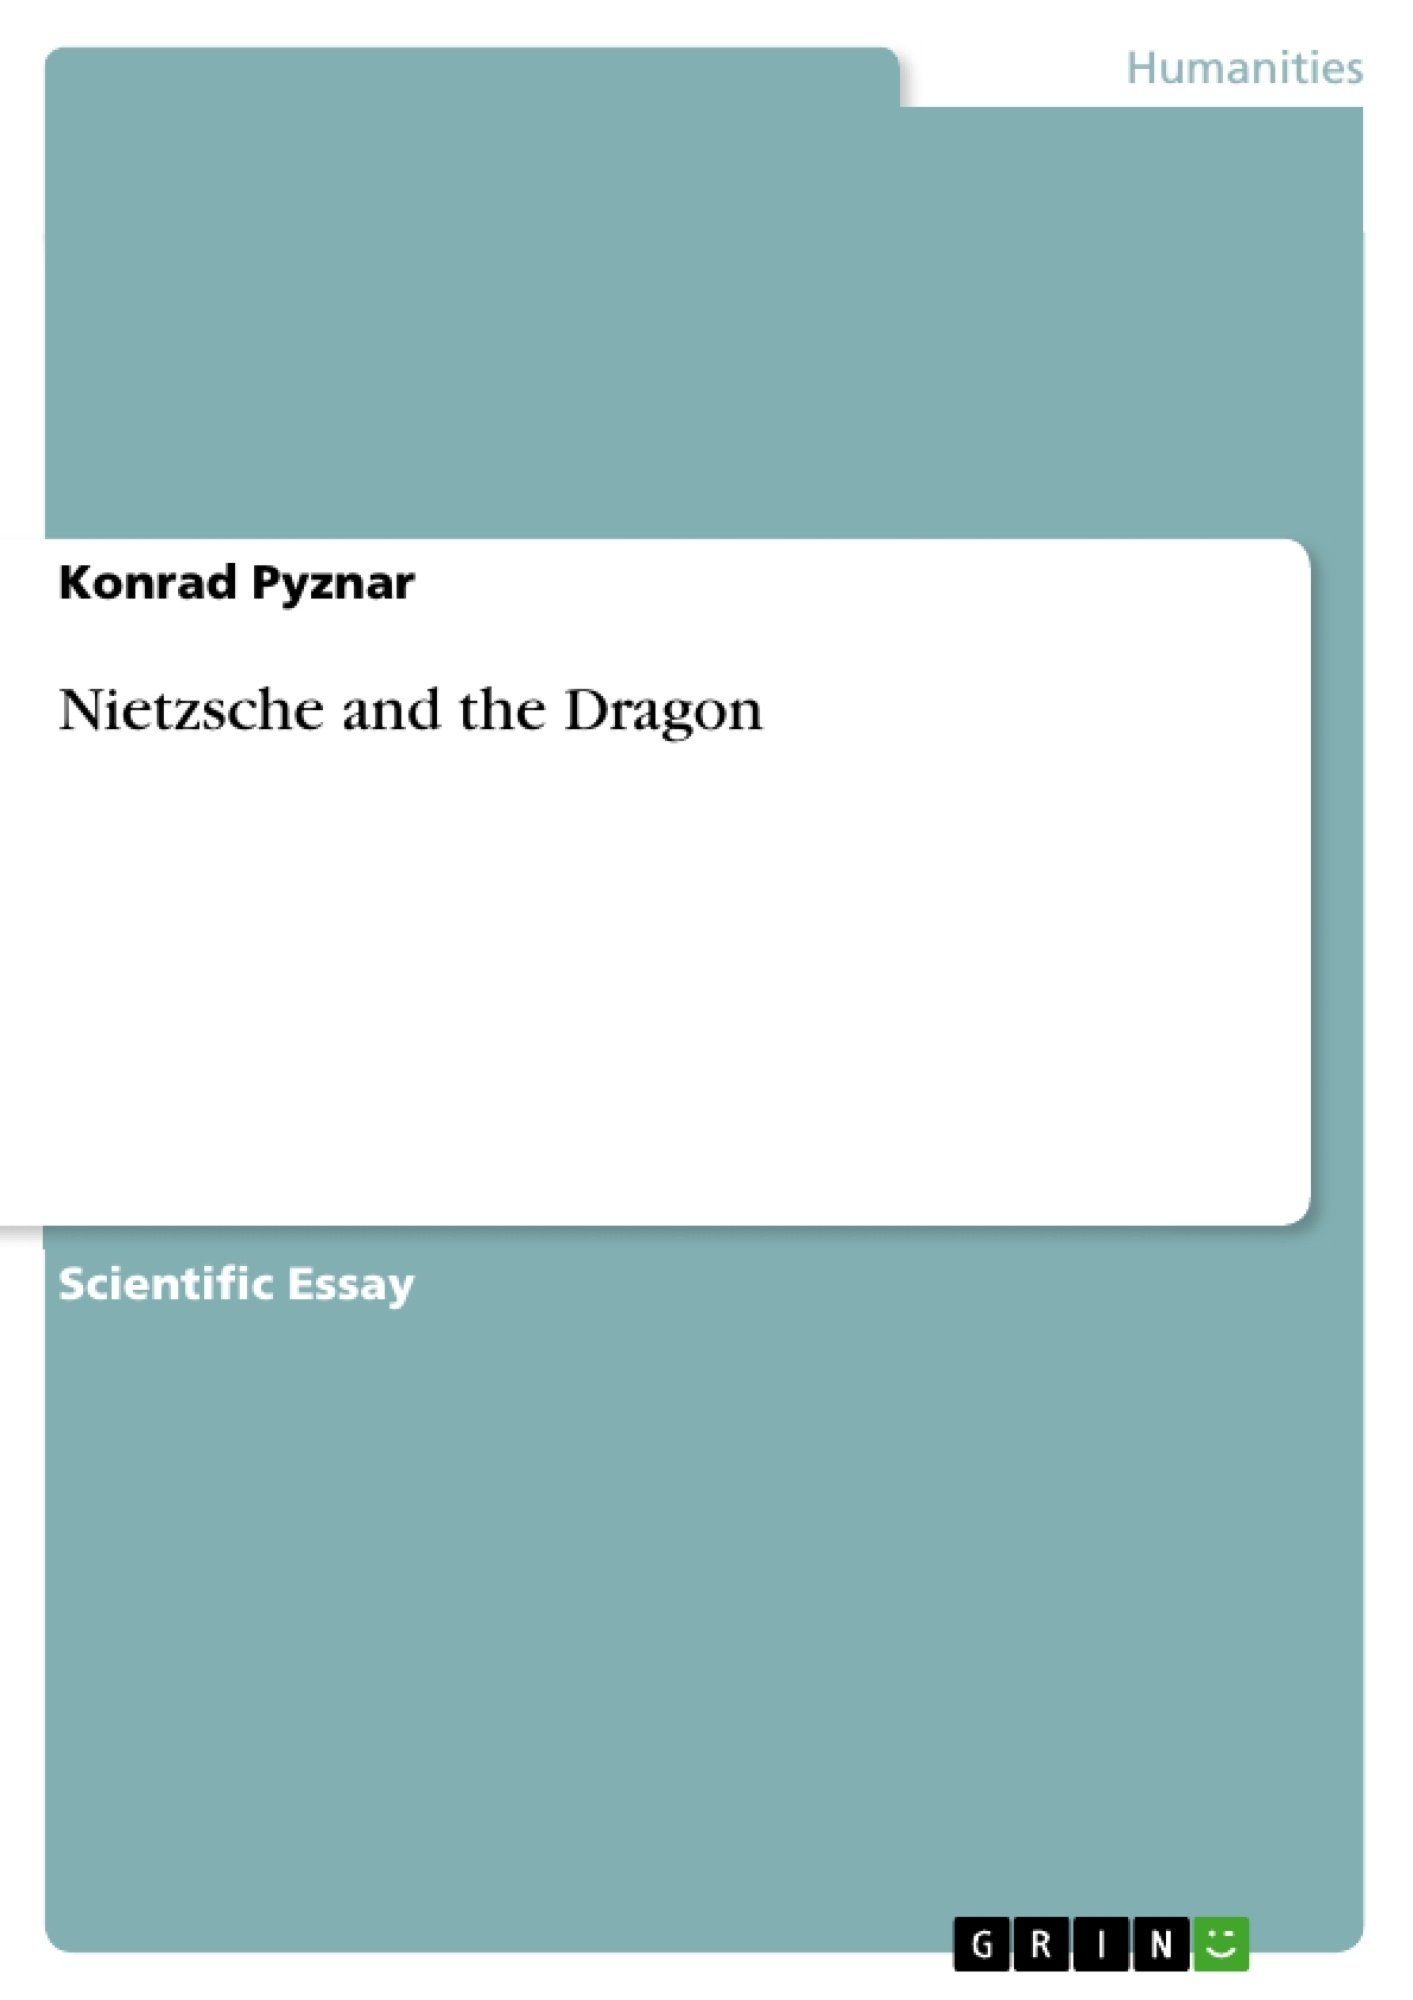 Nietzsche And The Dragon Publish Your Masters Thesis Bachelors